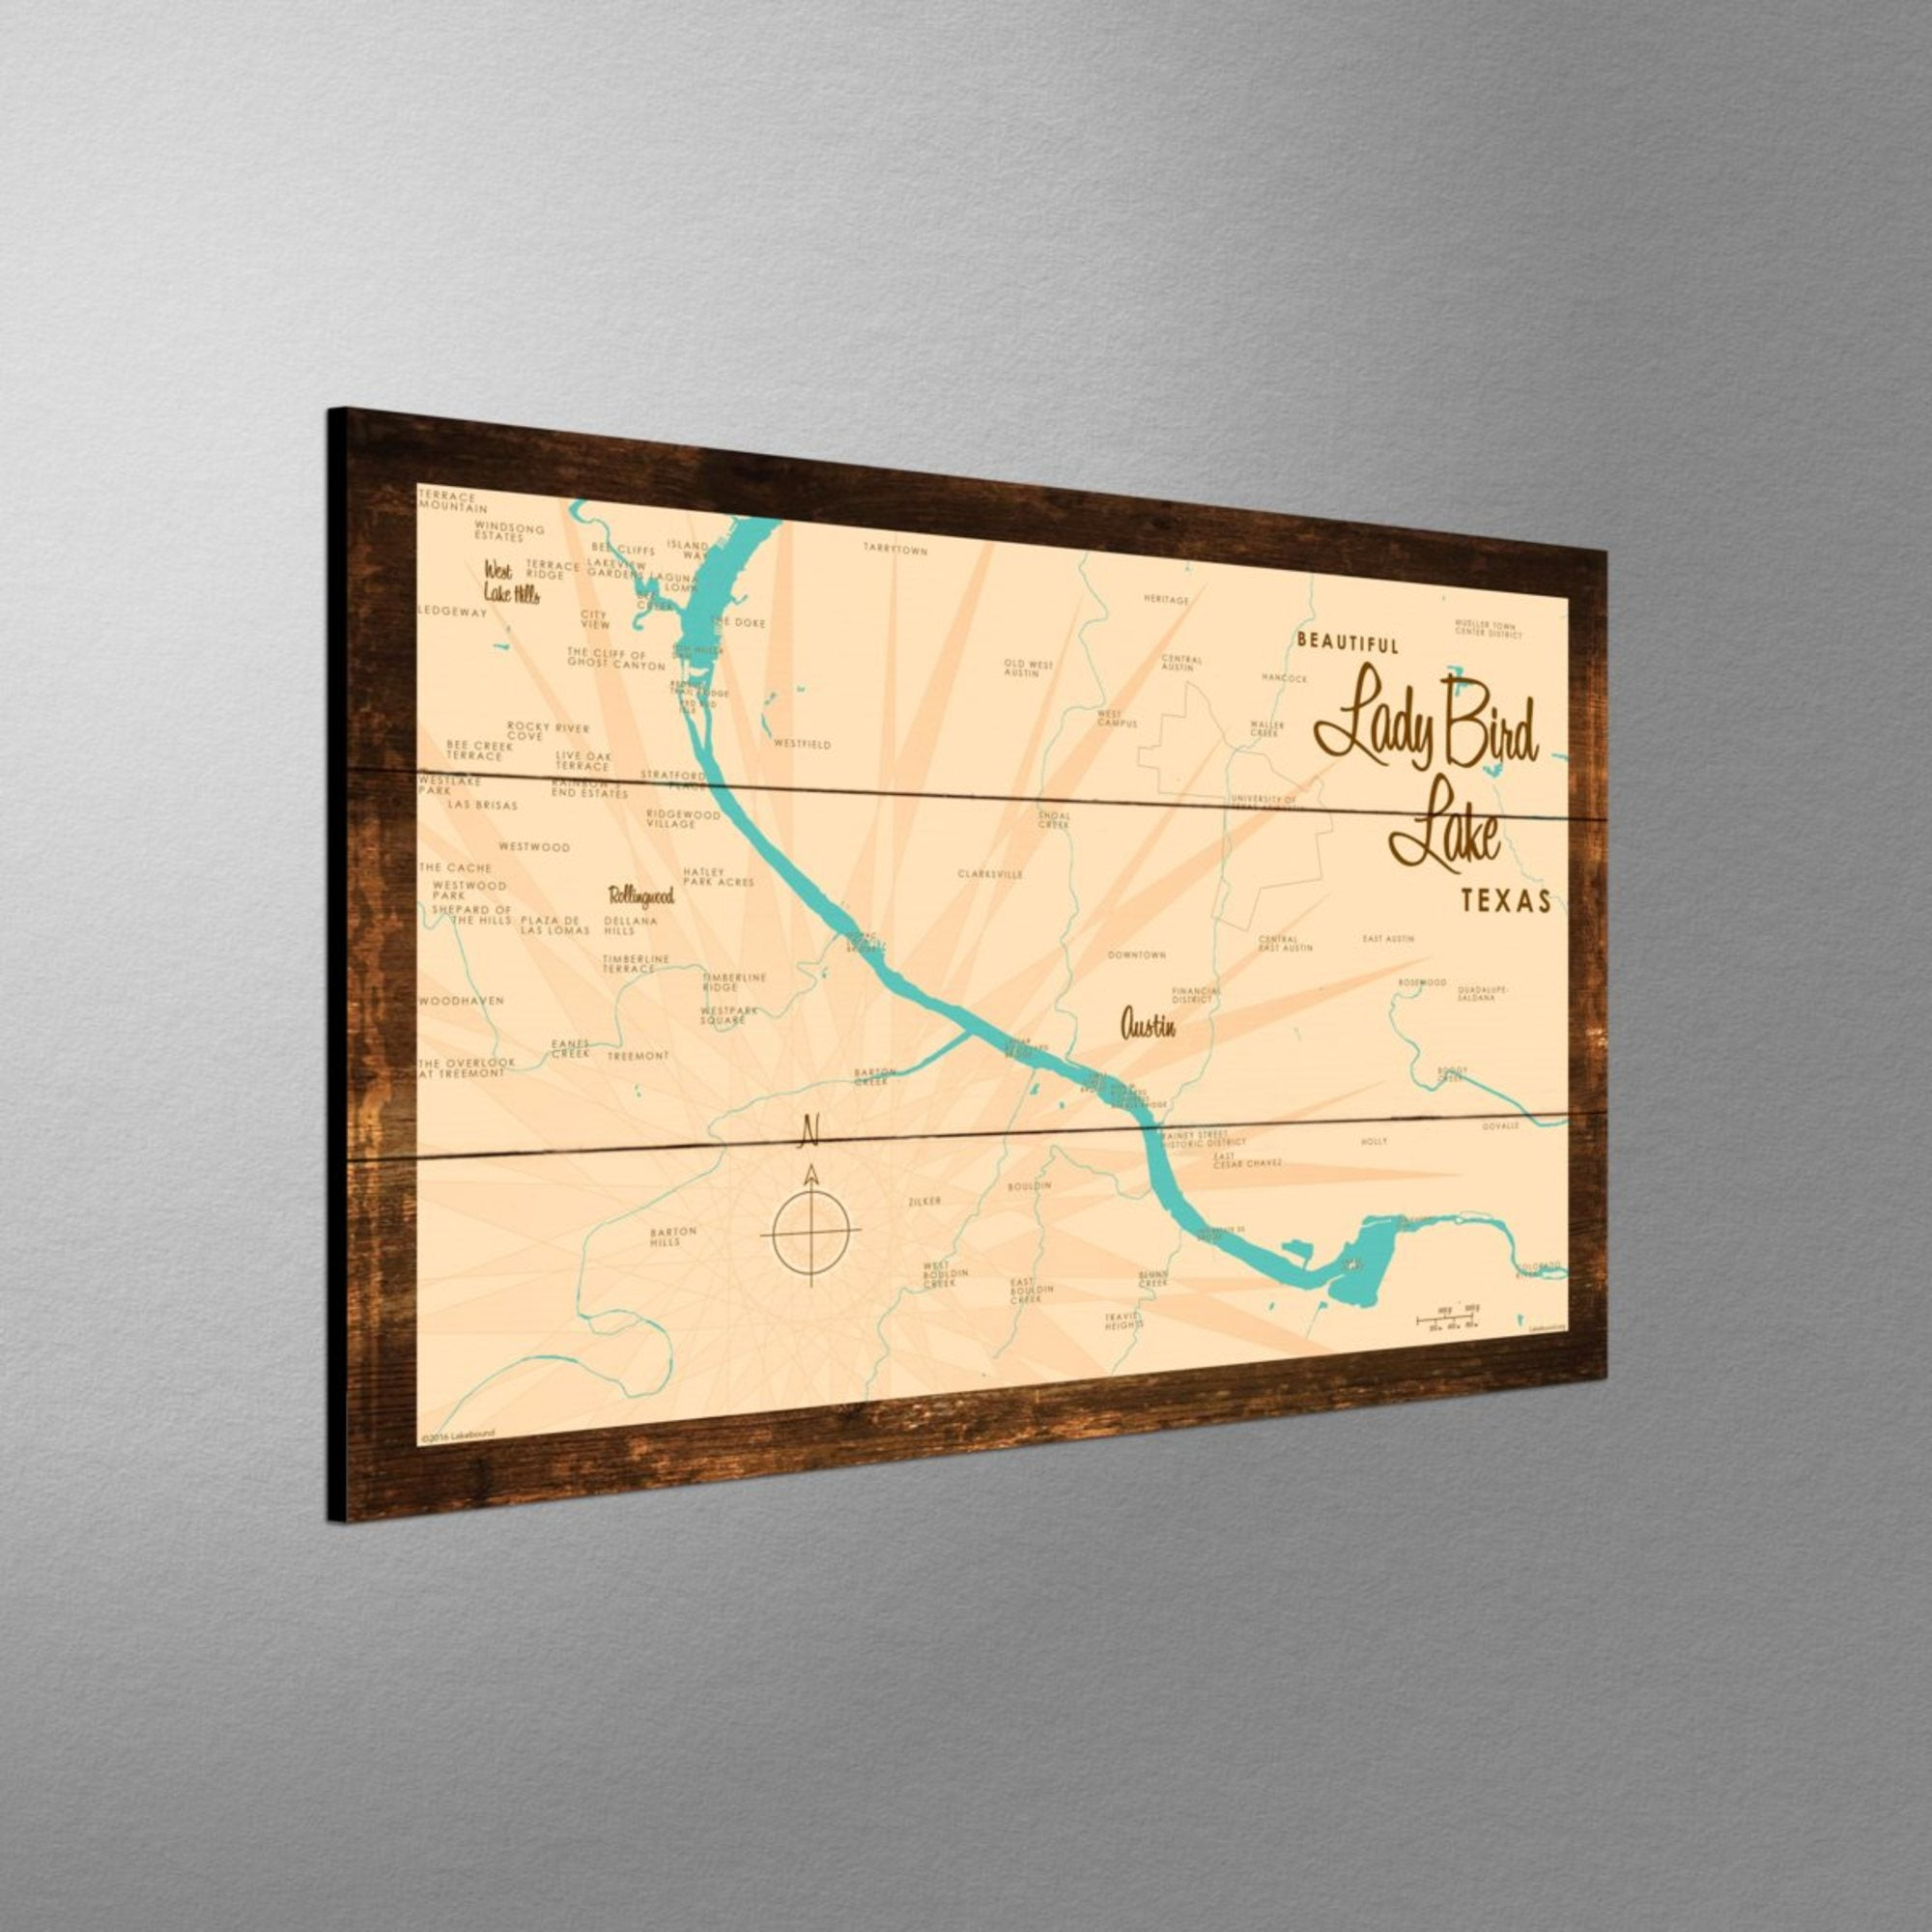 Lady Bird Lake Texas, Rustic Wood Sign Map Art